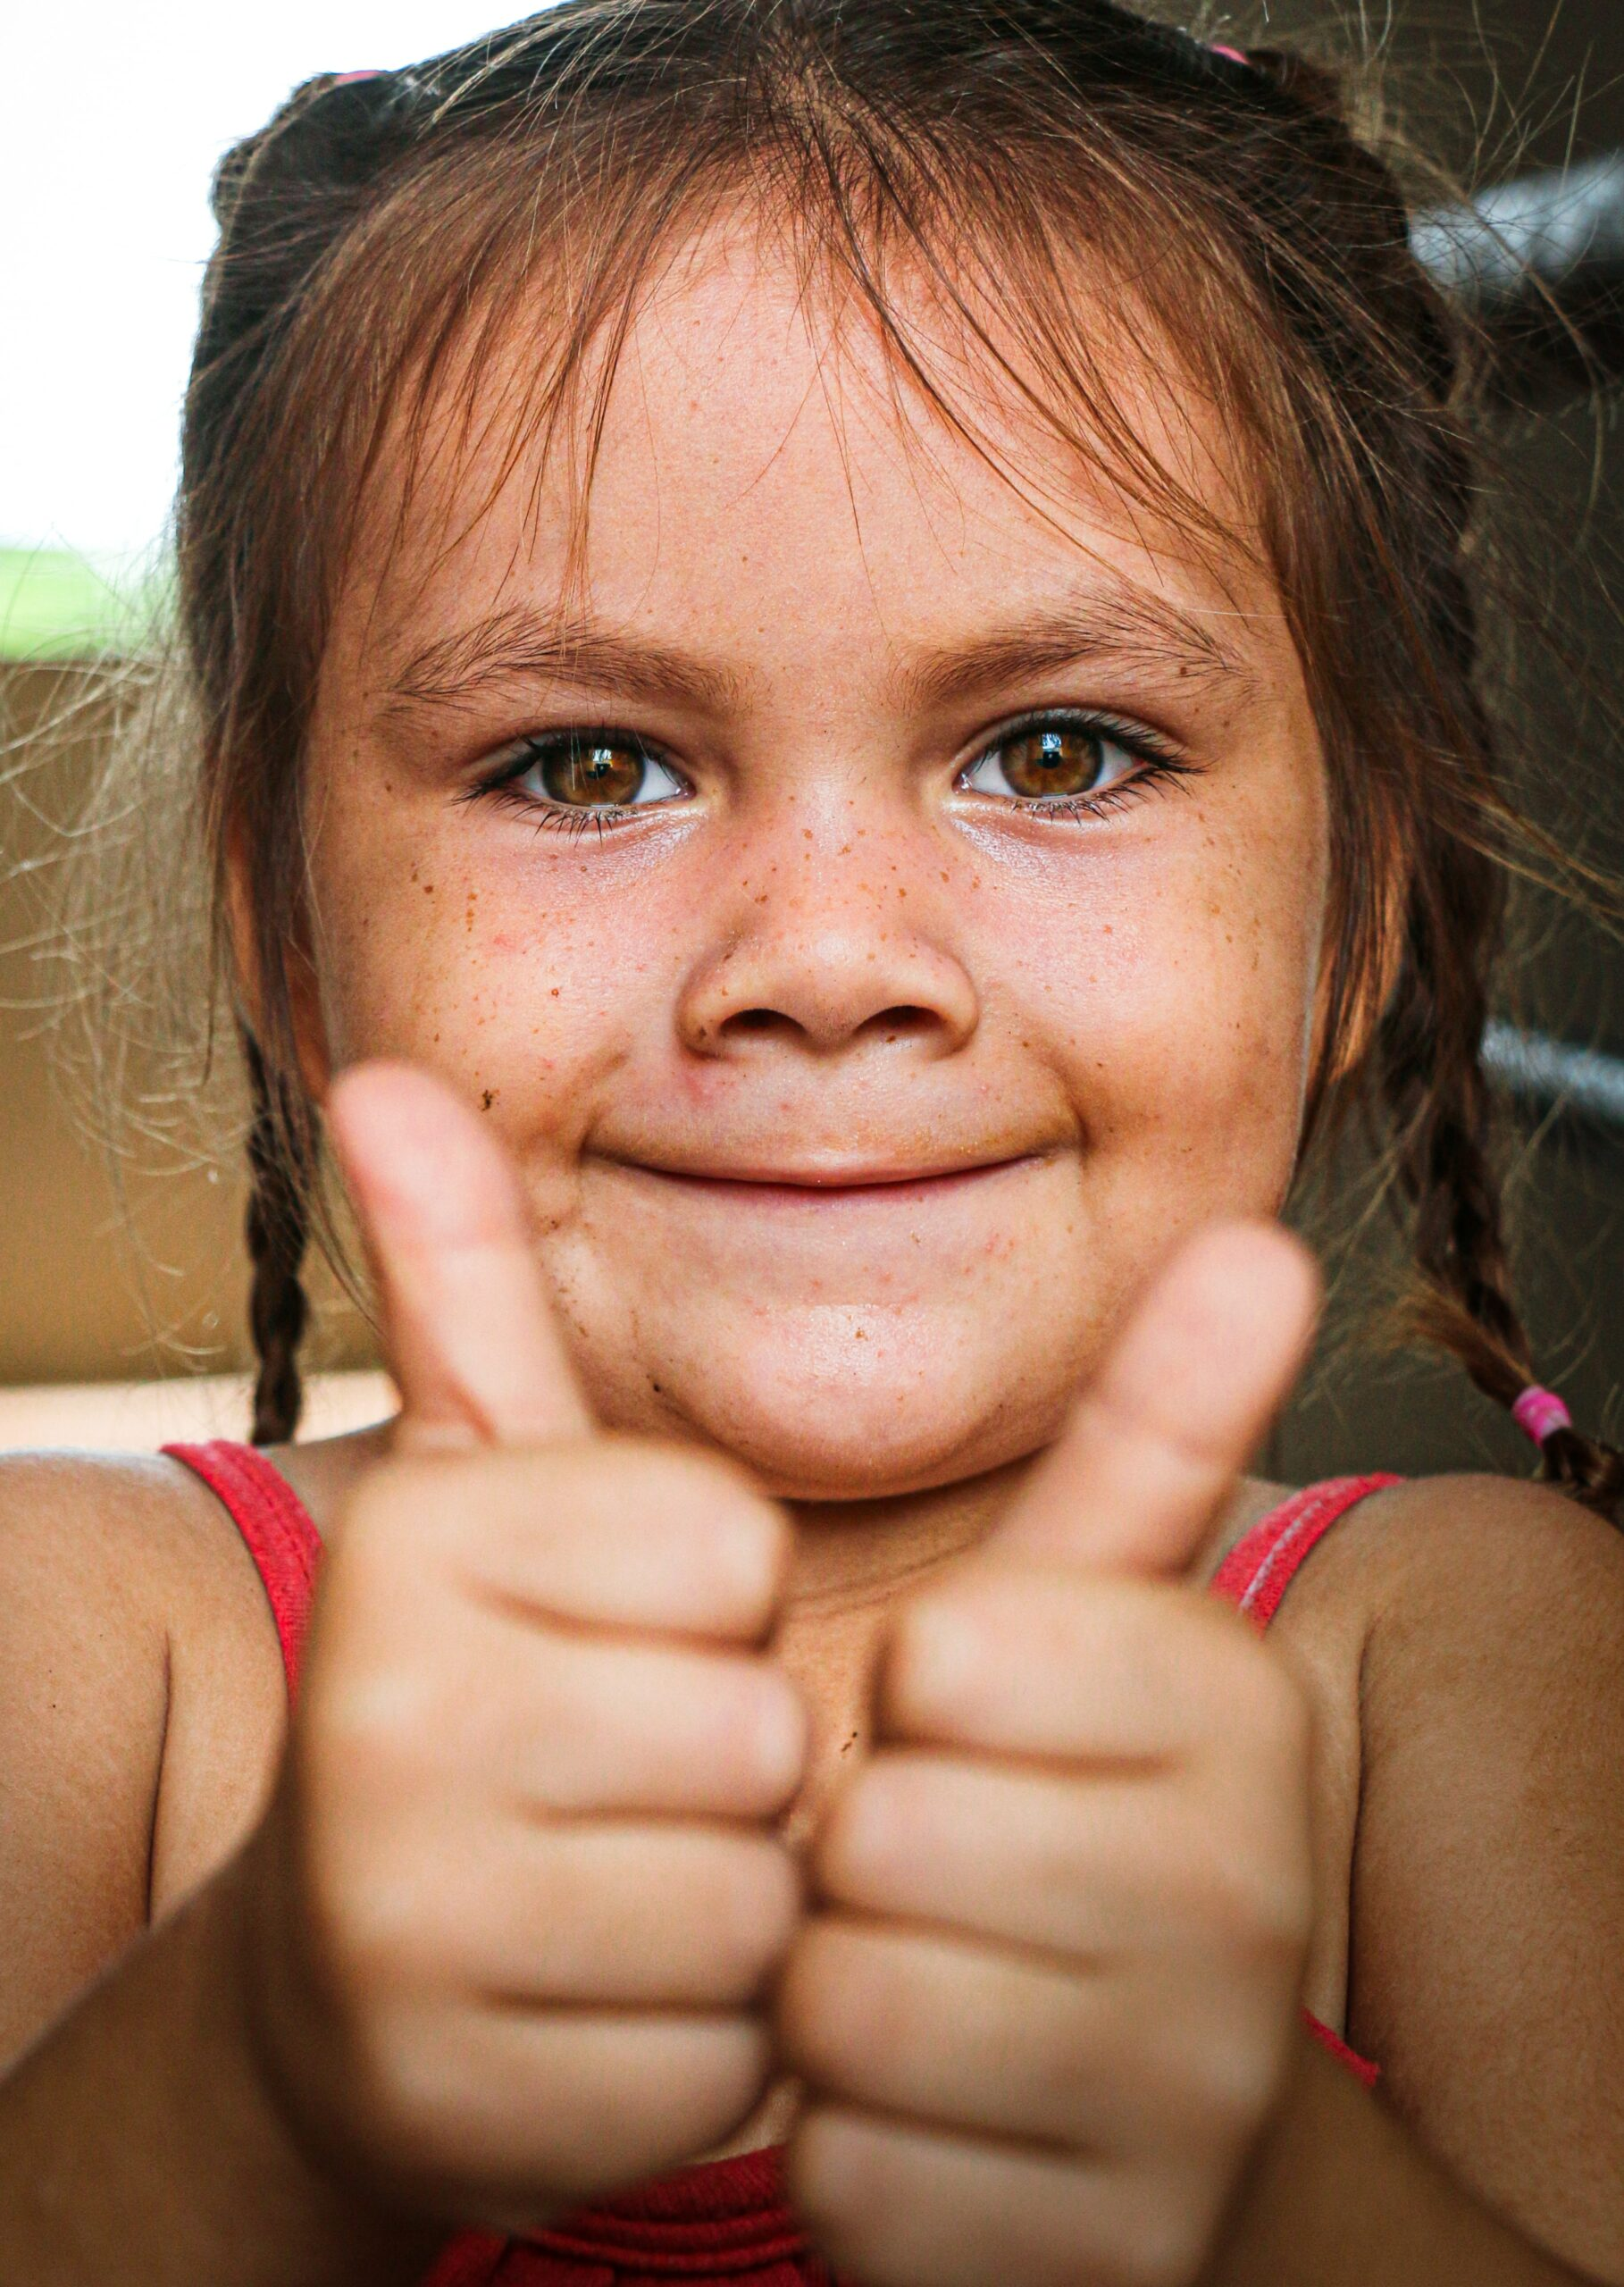 A photo of a girl with two thumbs up as if she likes or loves her body